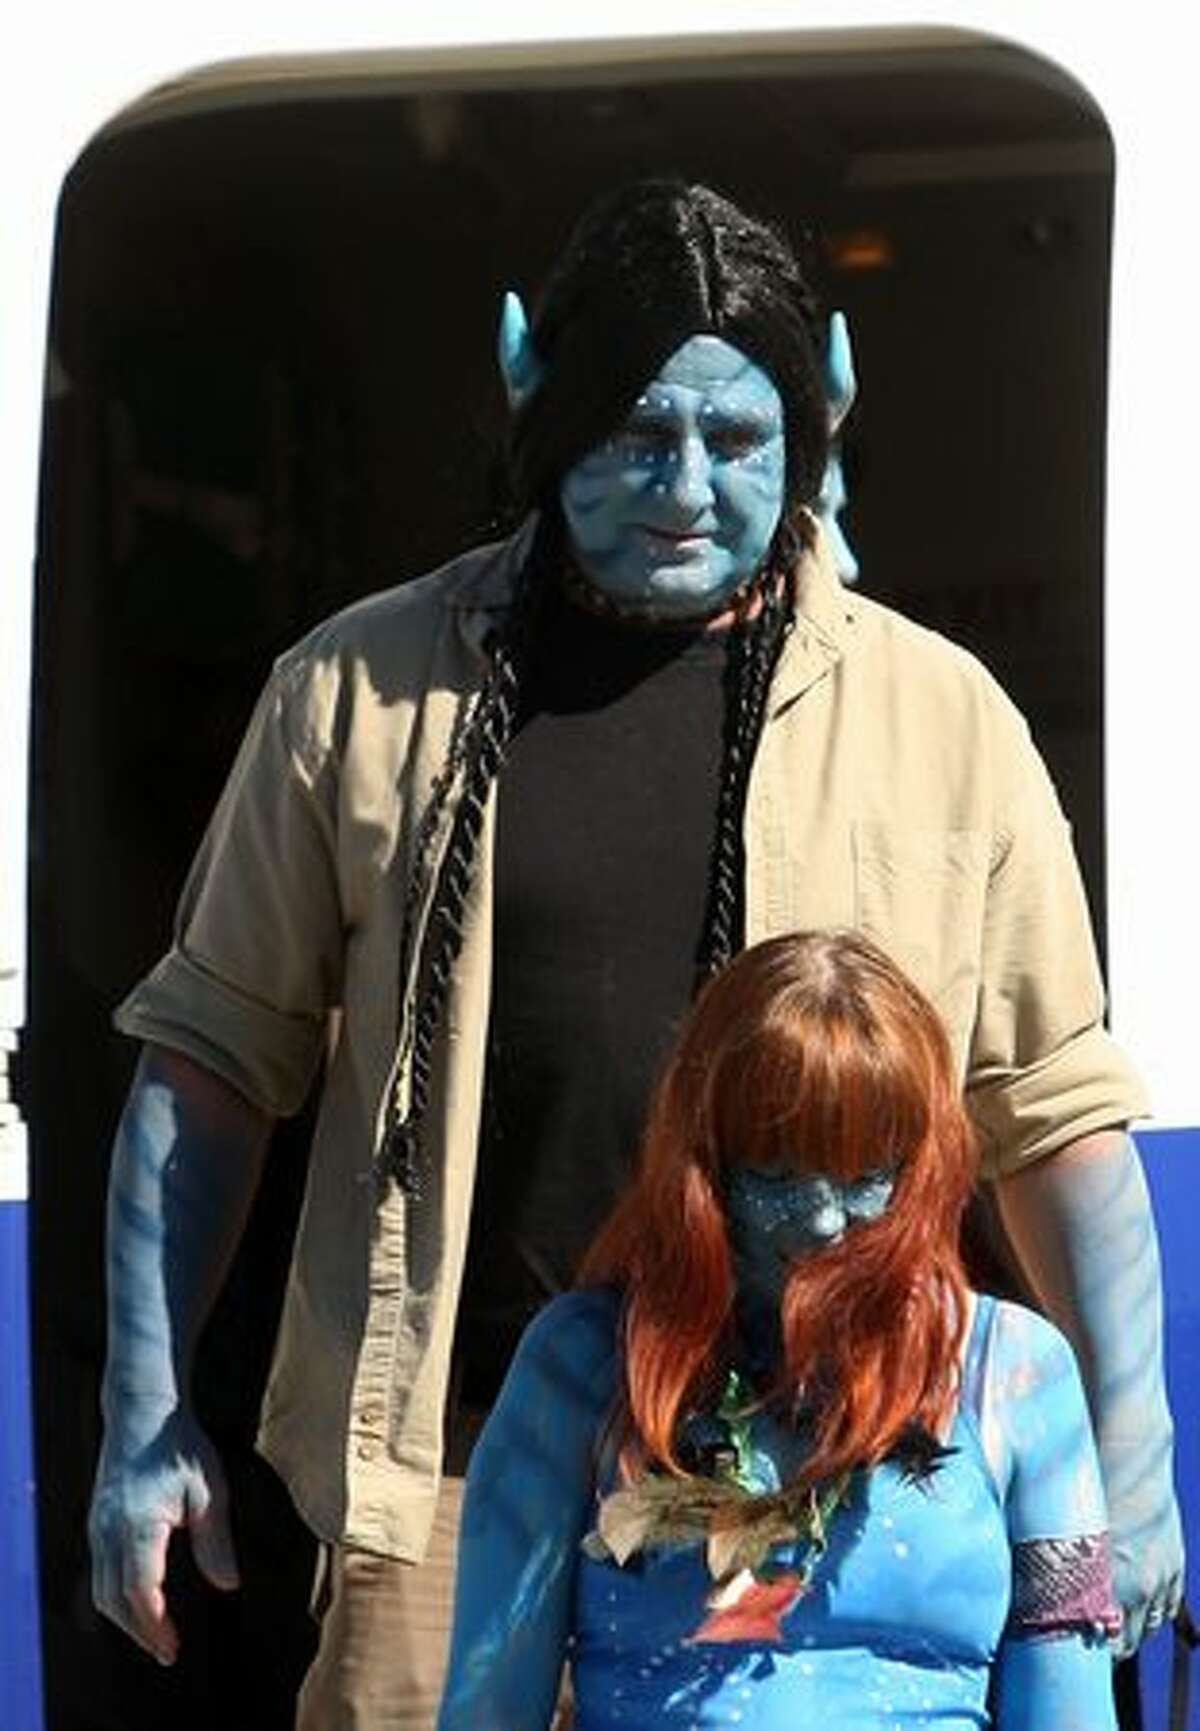 Competition winners dressed up as characters from the film